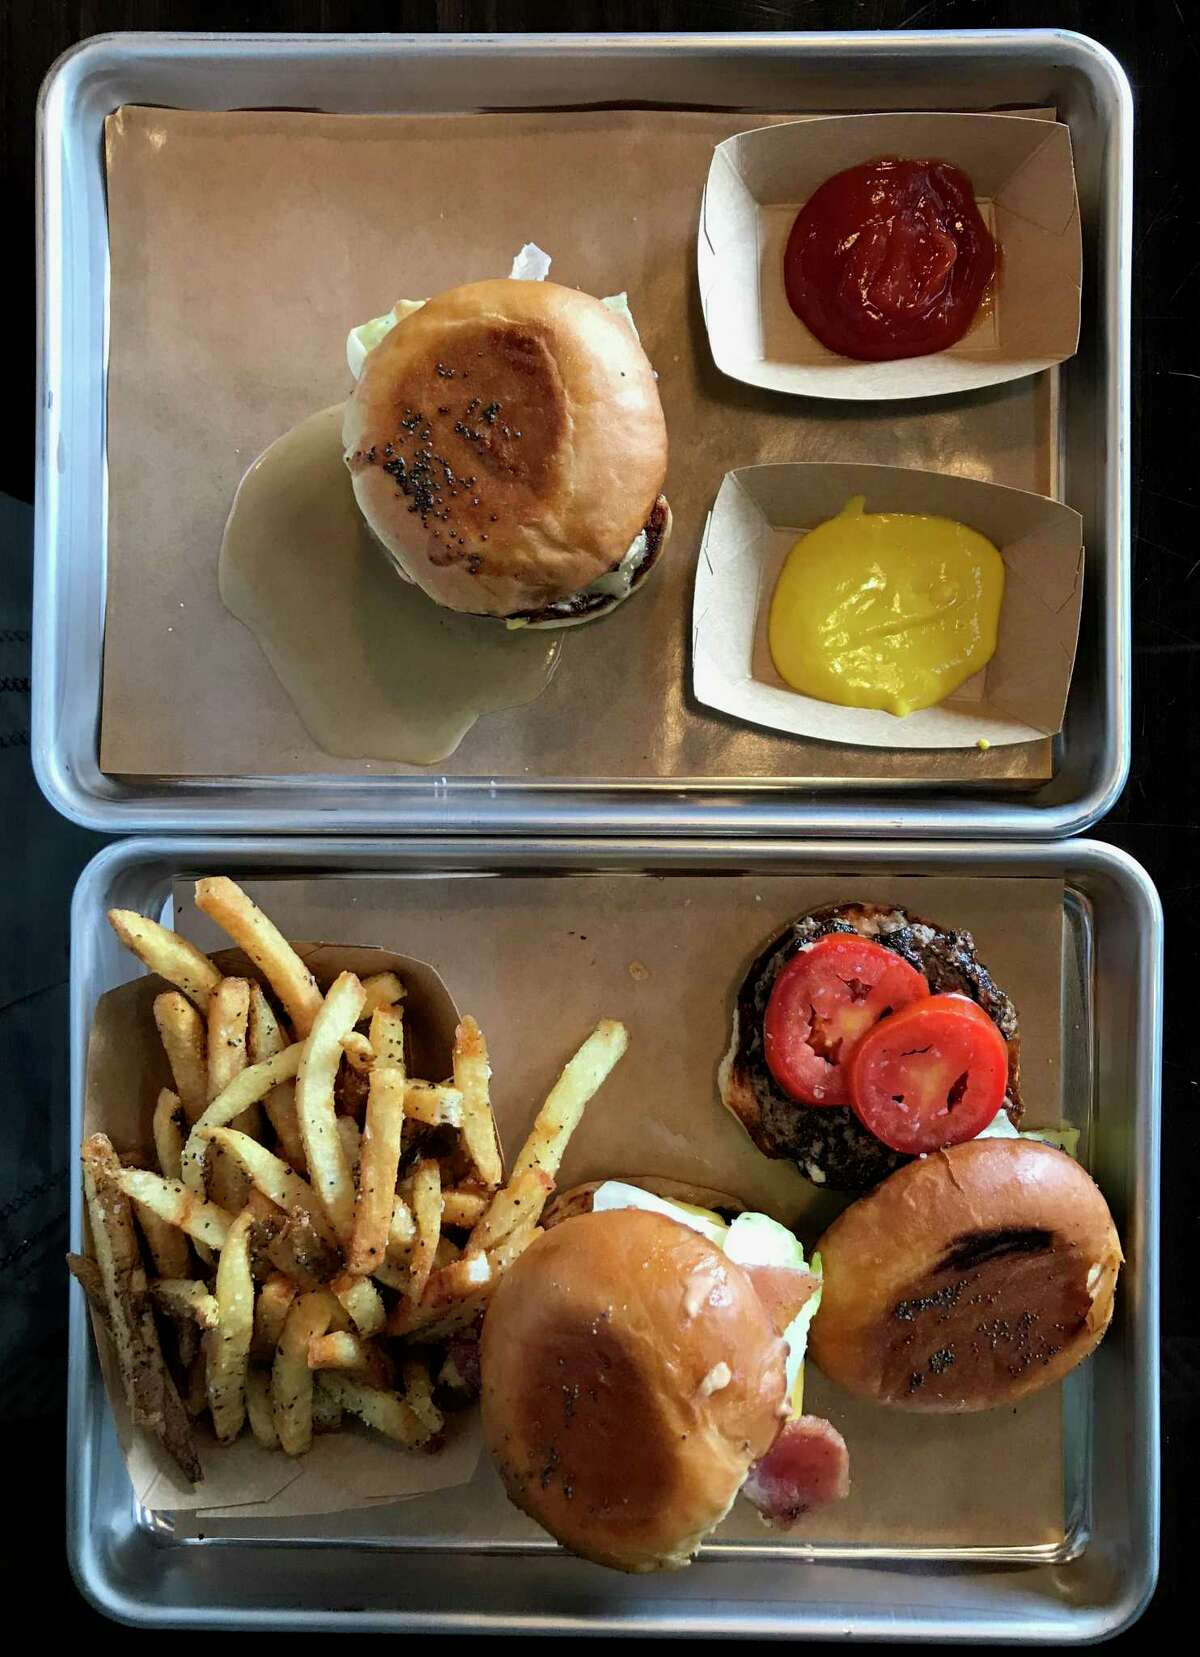 A selection of burgers from Mr. Juicy